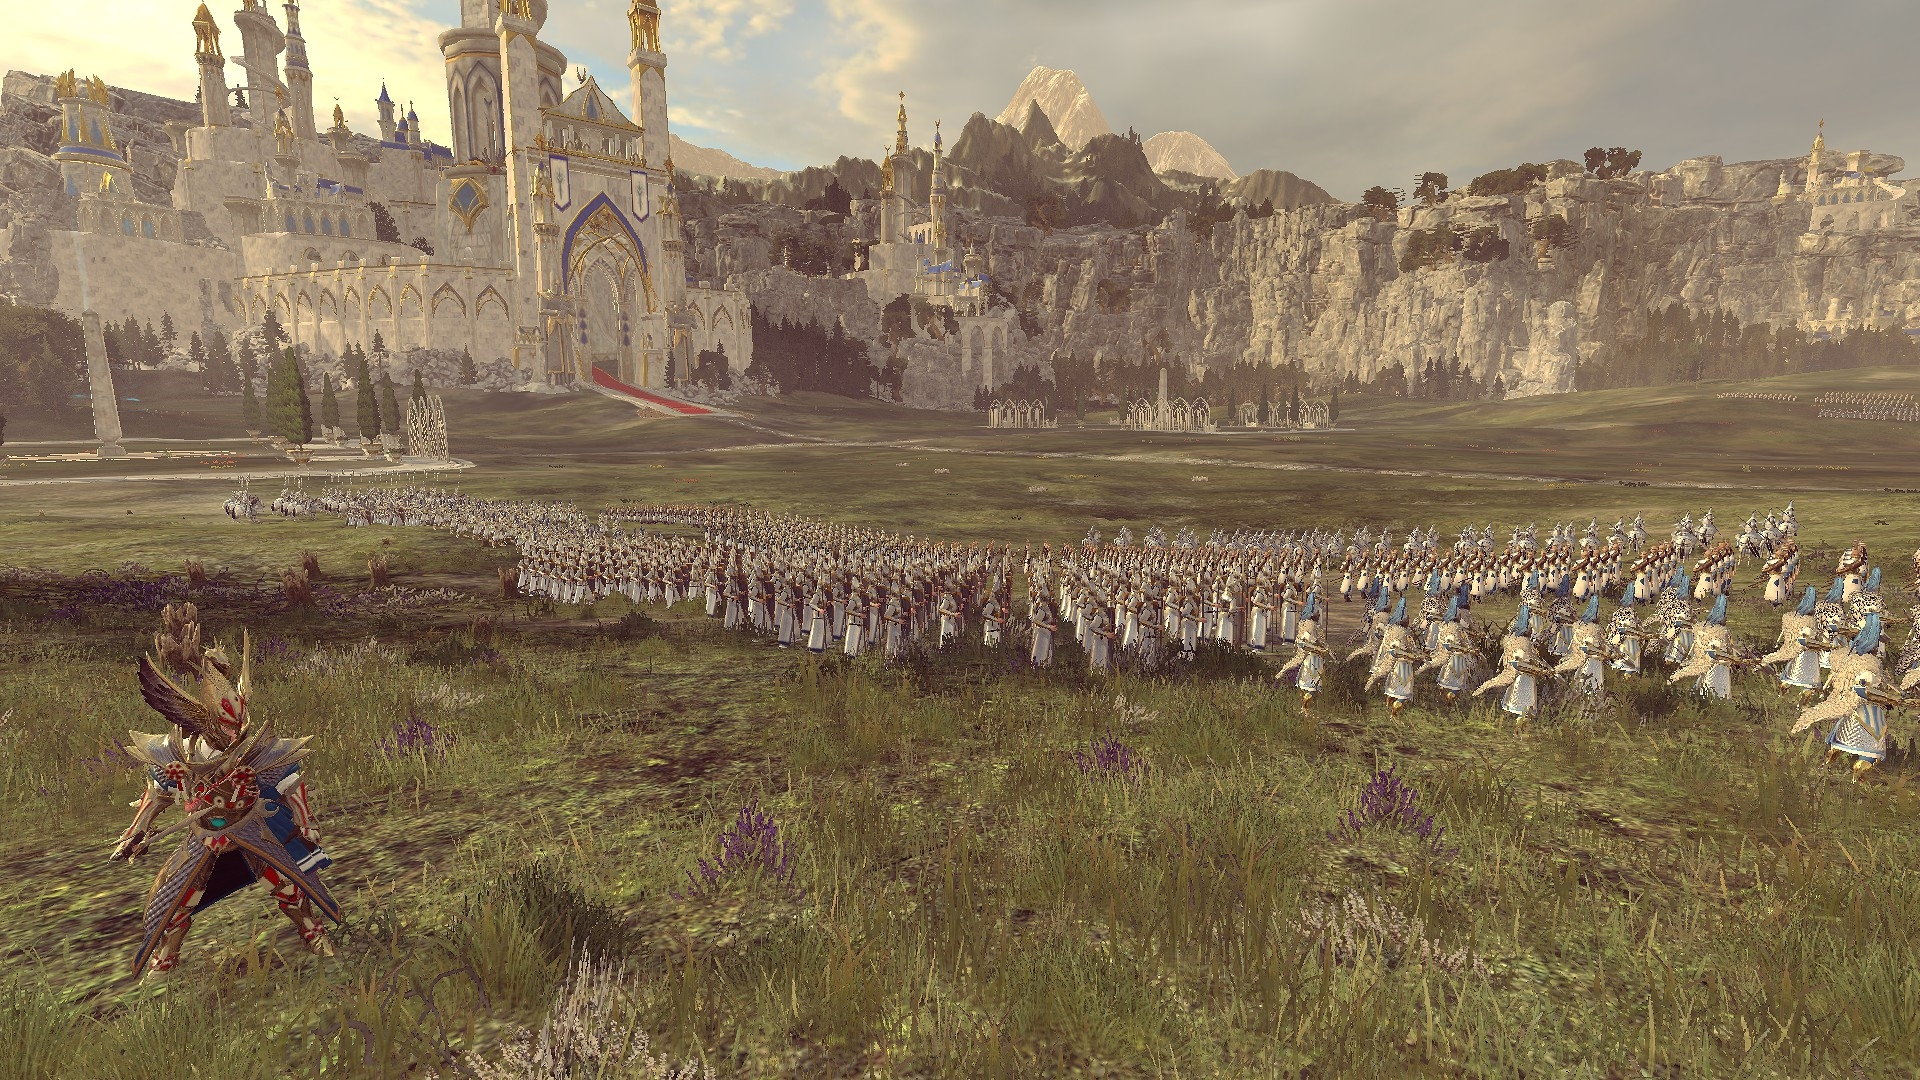 Graphics are way too sharp — Total War Forums